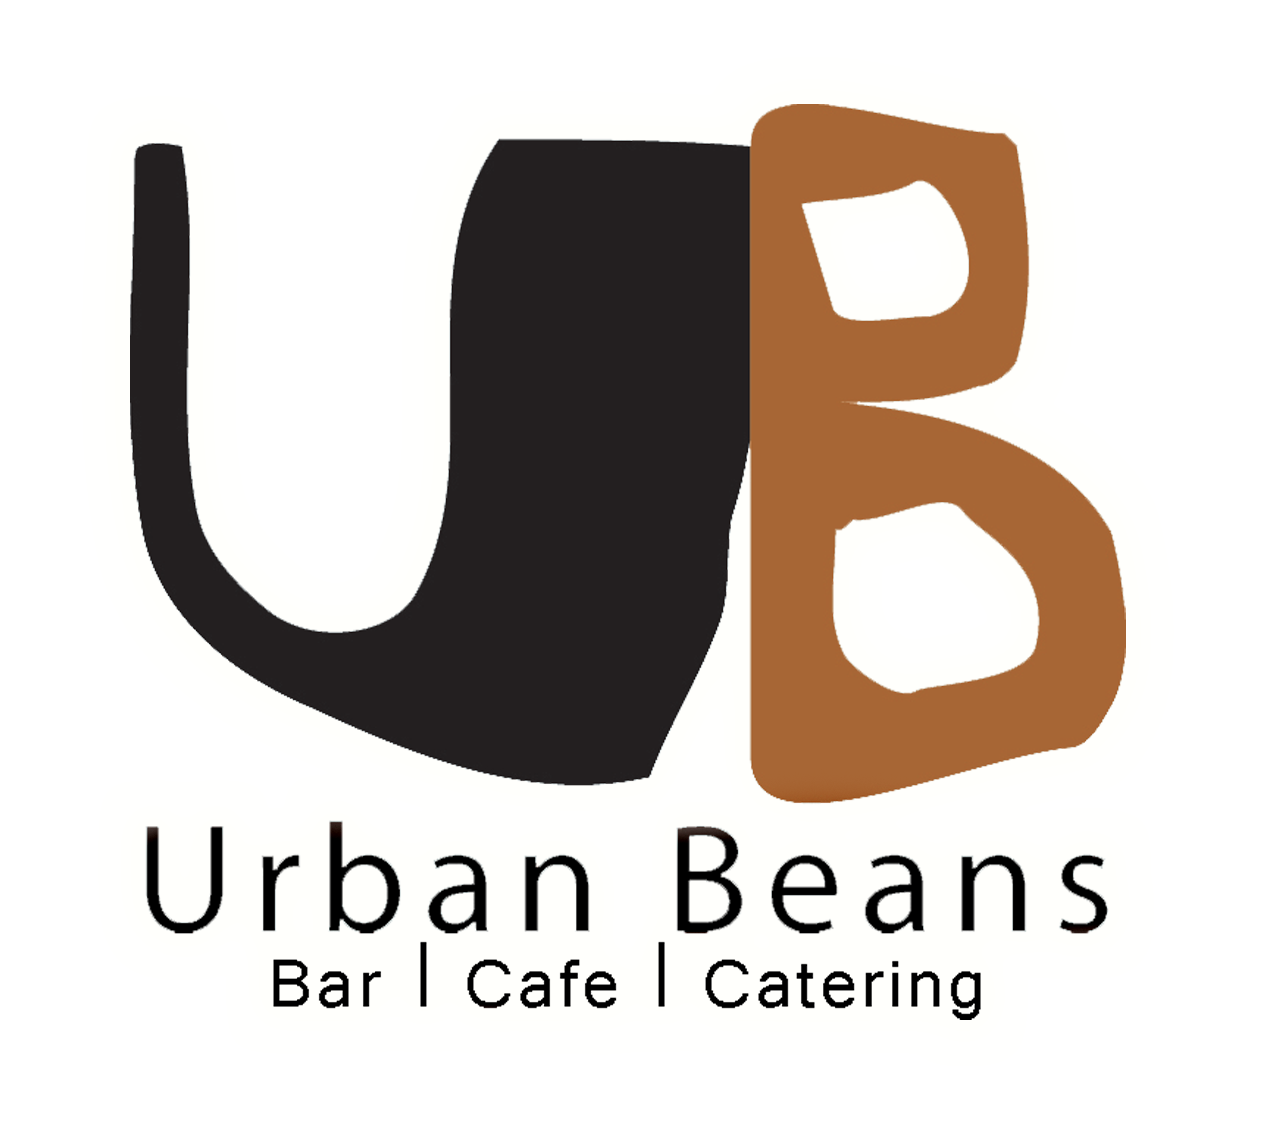 Urban Beans Bar & 24hr Cafe